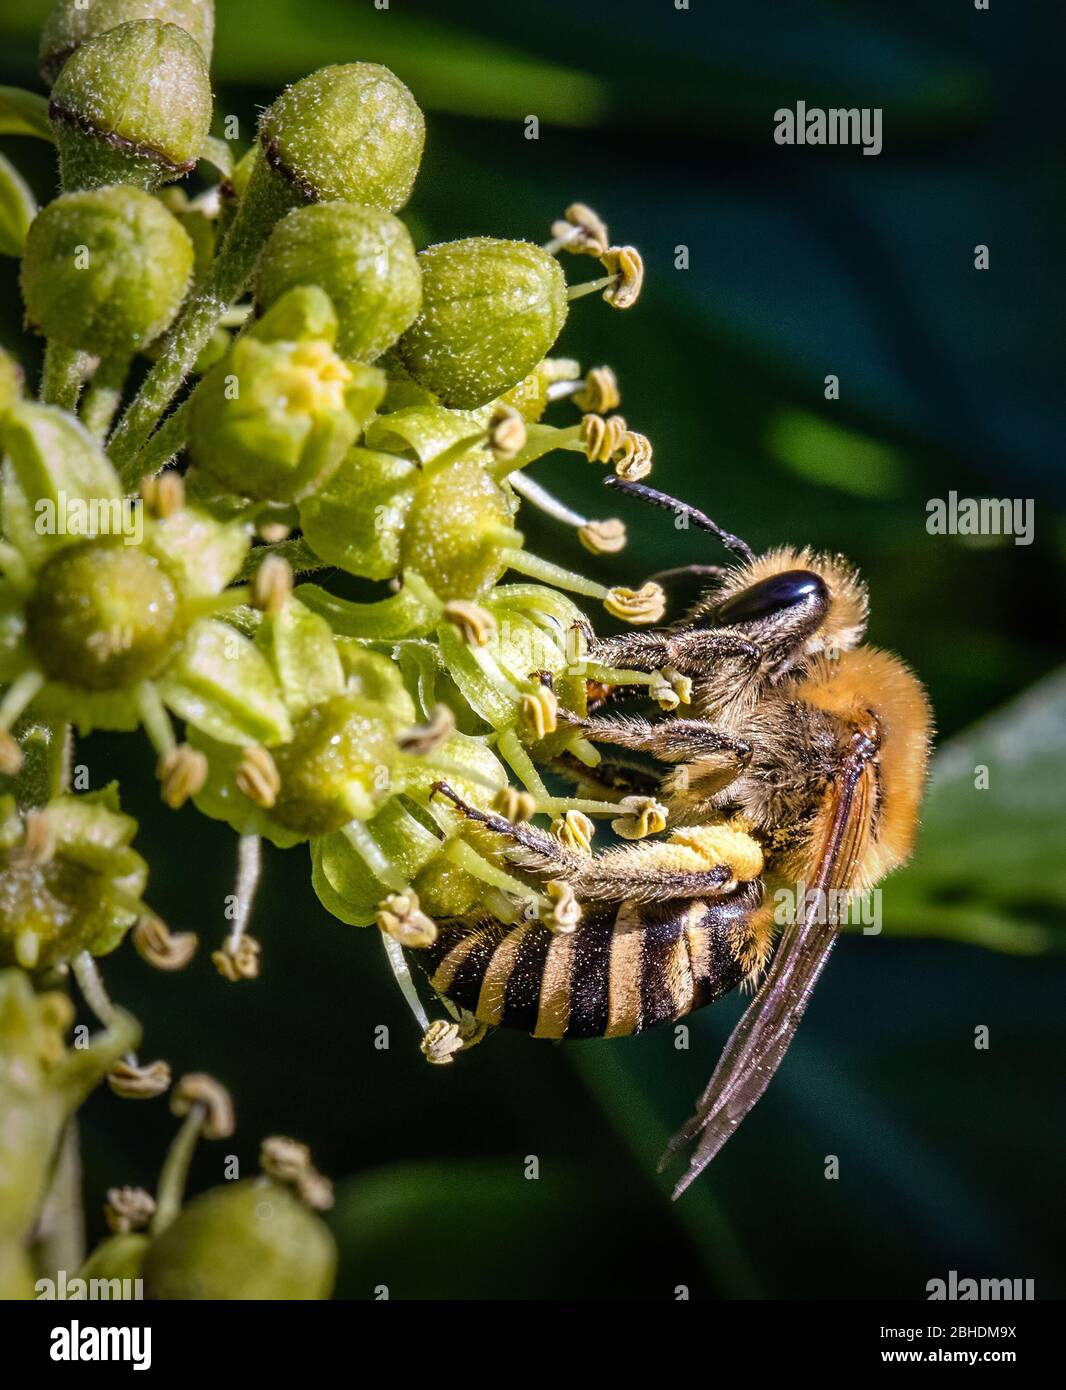 Ivy Bee Colletes hederae - a species of solitary miner bee - feeding on ivy flower Hedera helix - Somerset UK Stock Photo